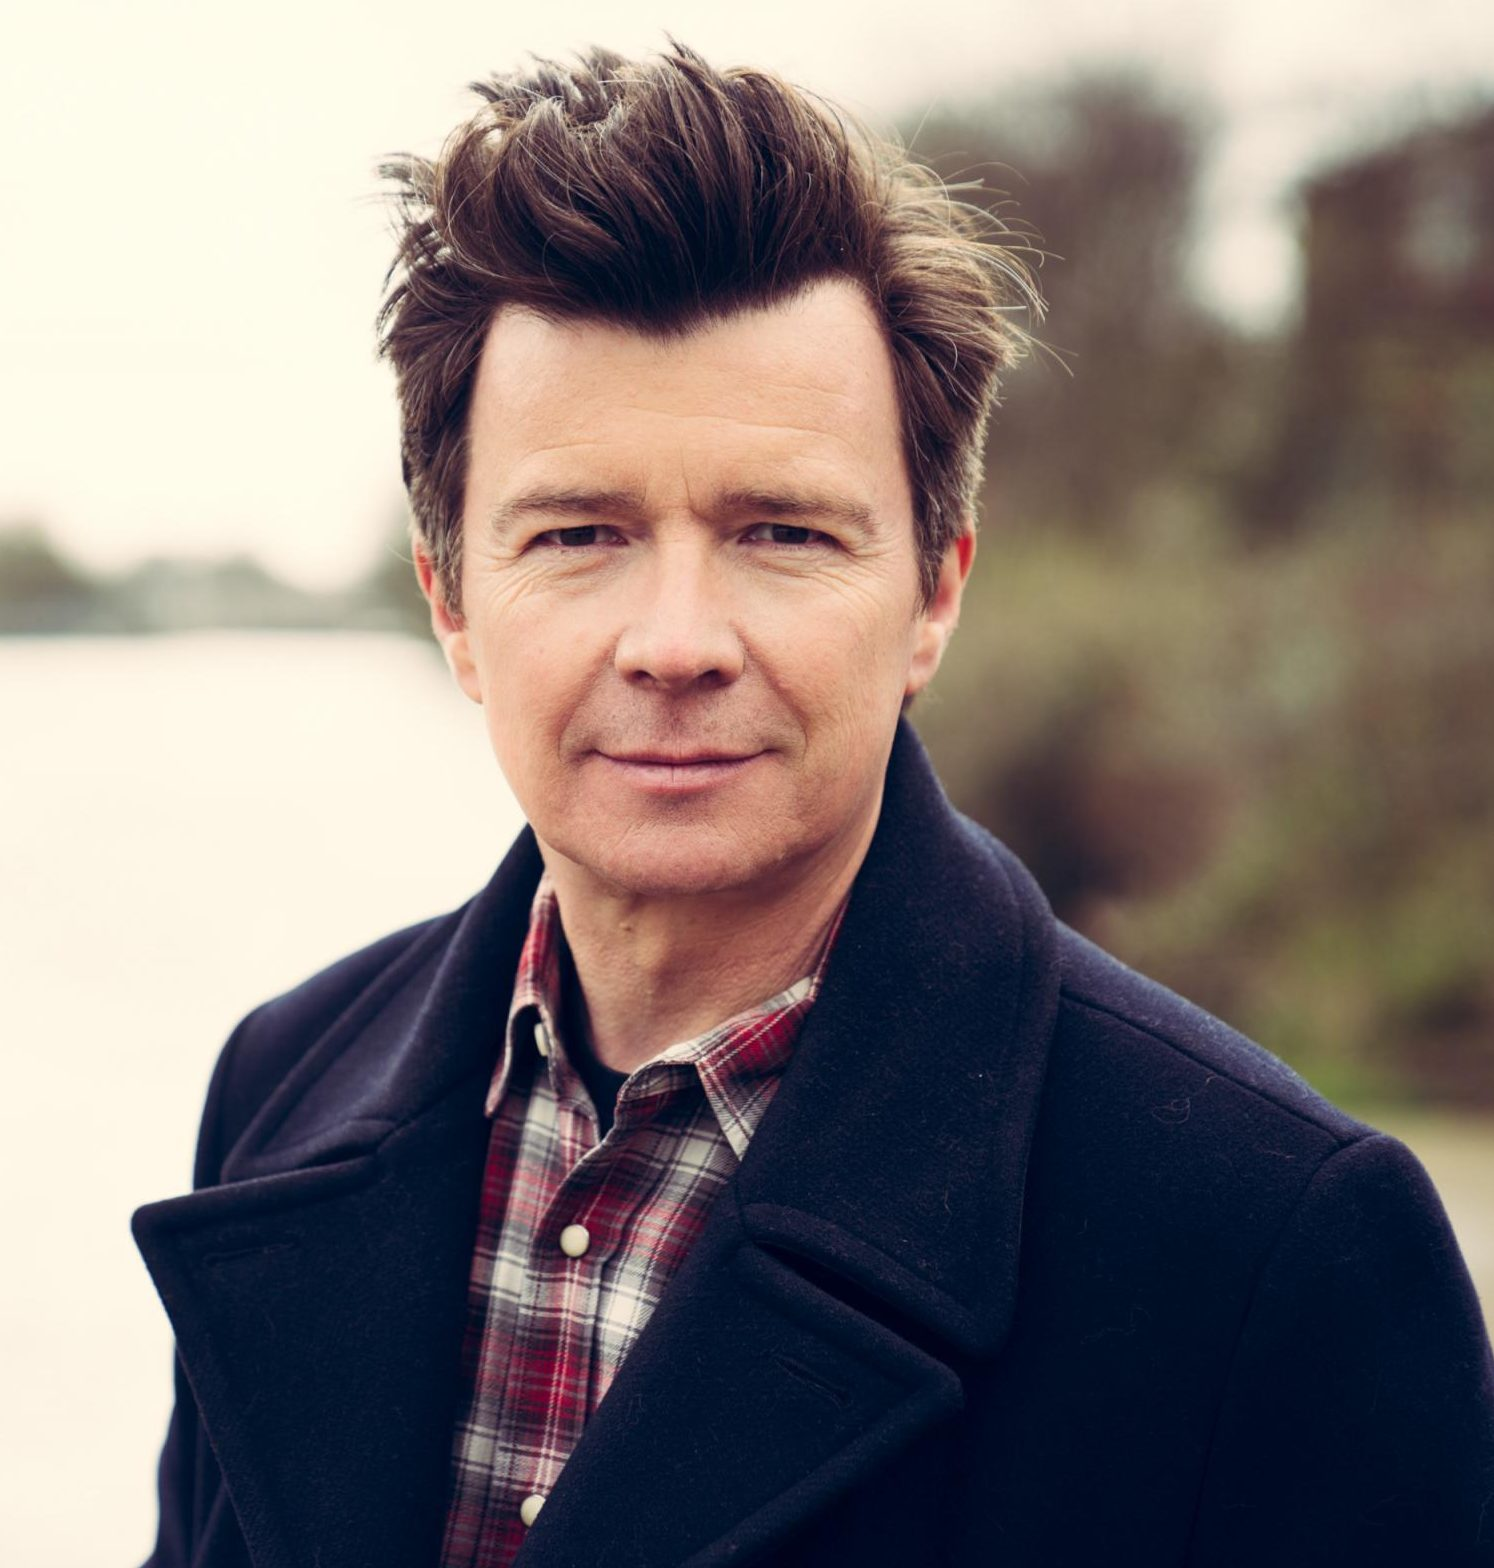 Rick Astley 2 e1585728992815 Rick Astley Will Play Free Concert For NHS And Emergency Services Workers